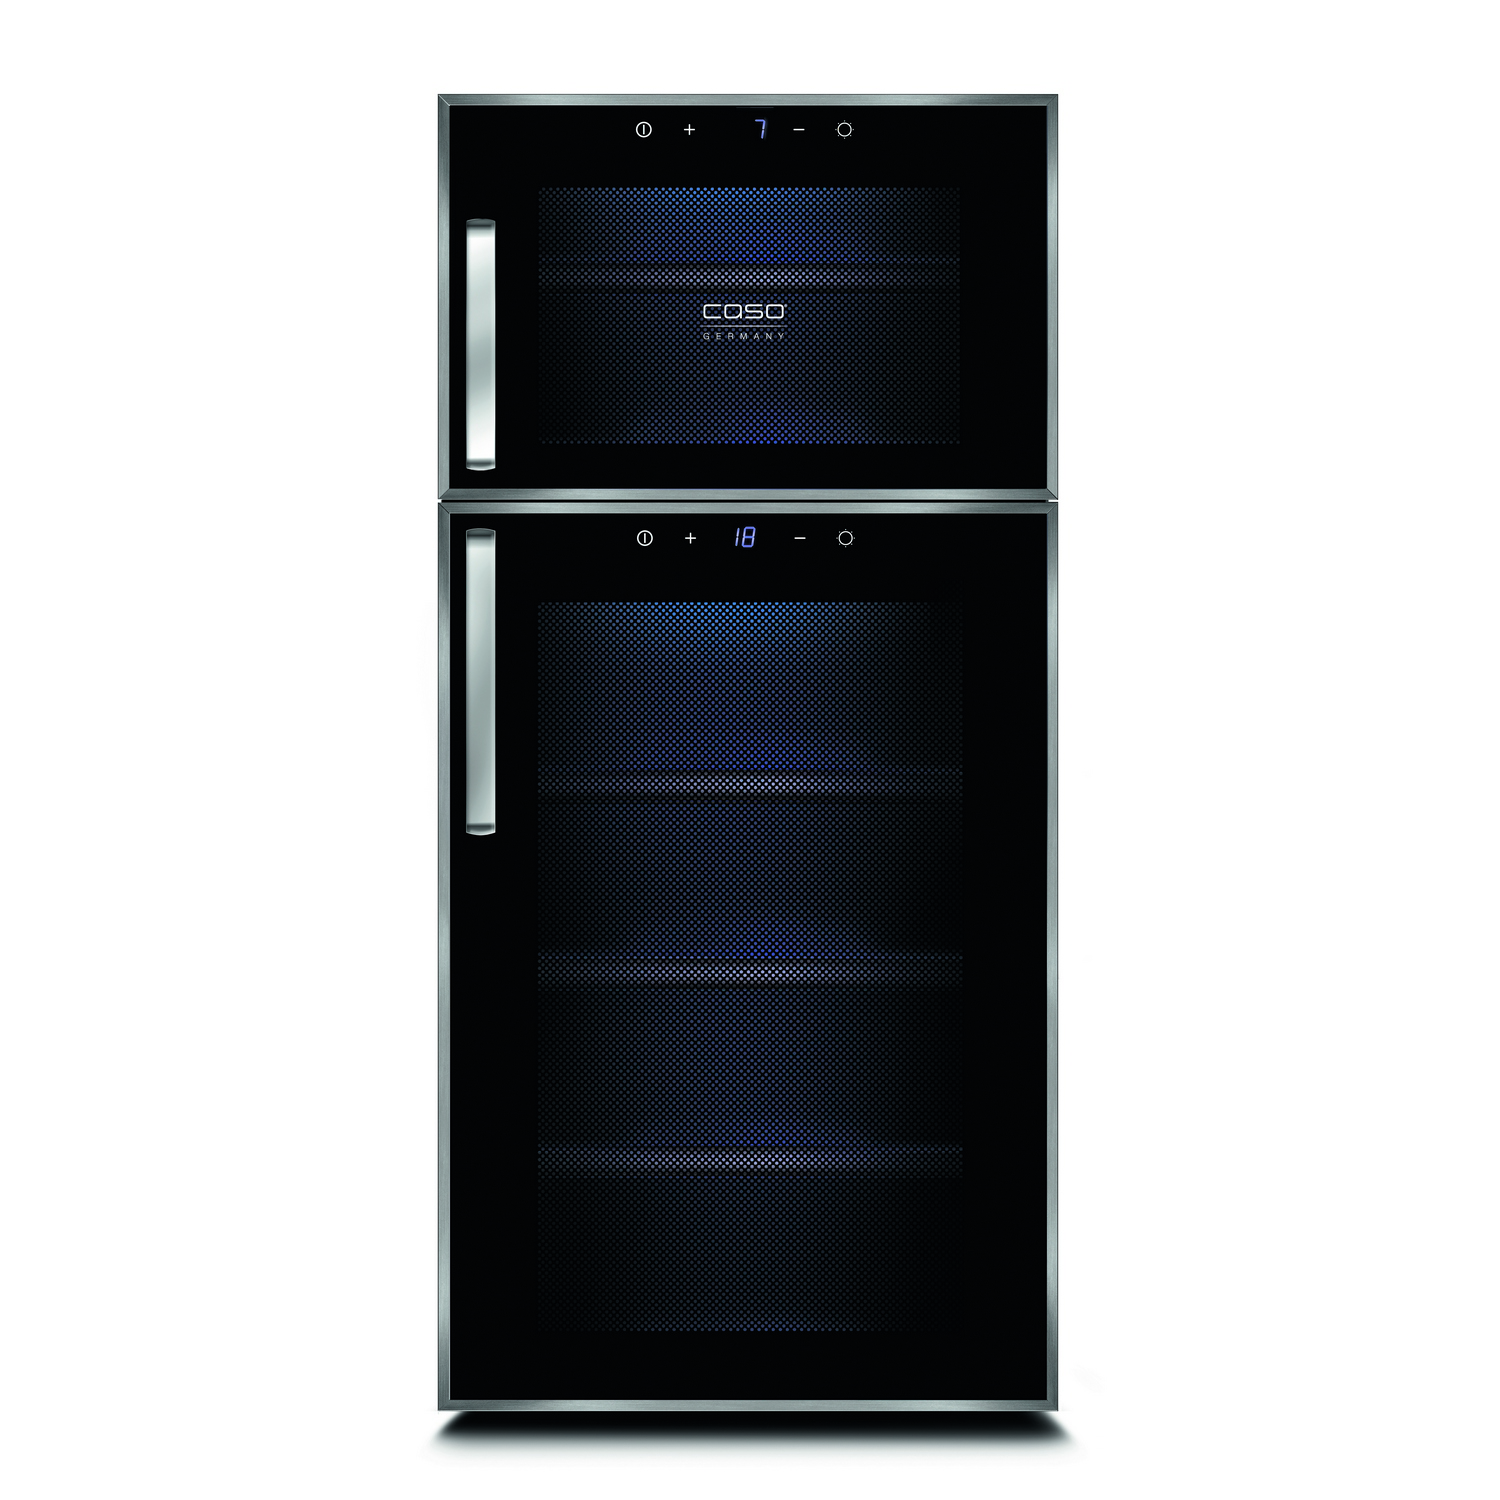 Caso Wine Duett Touch 21 Electronic4you